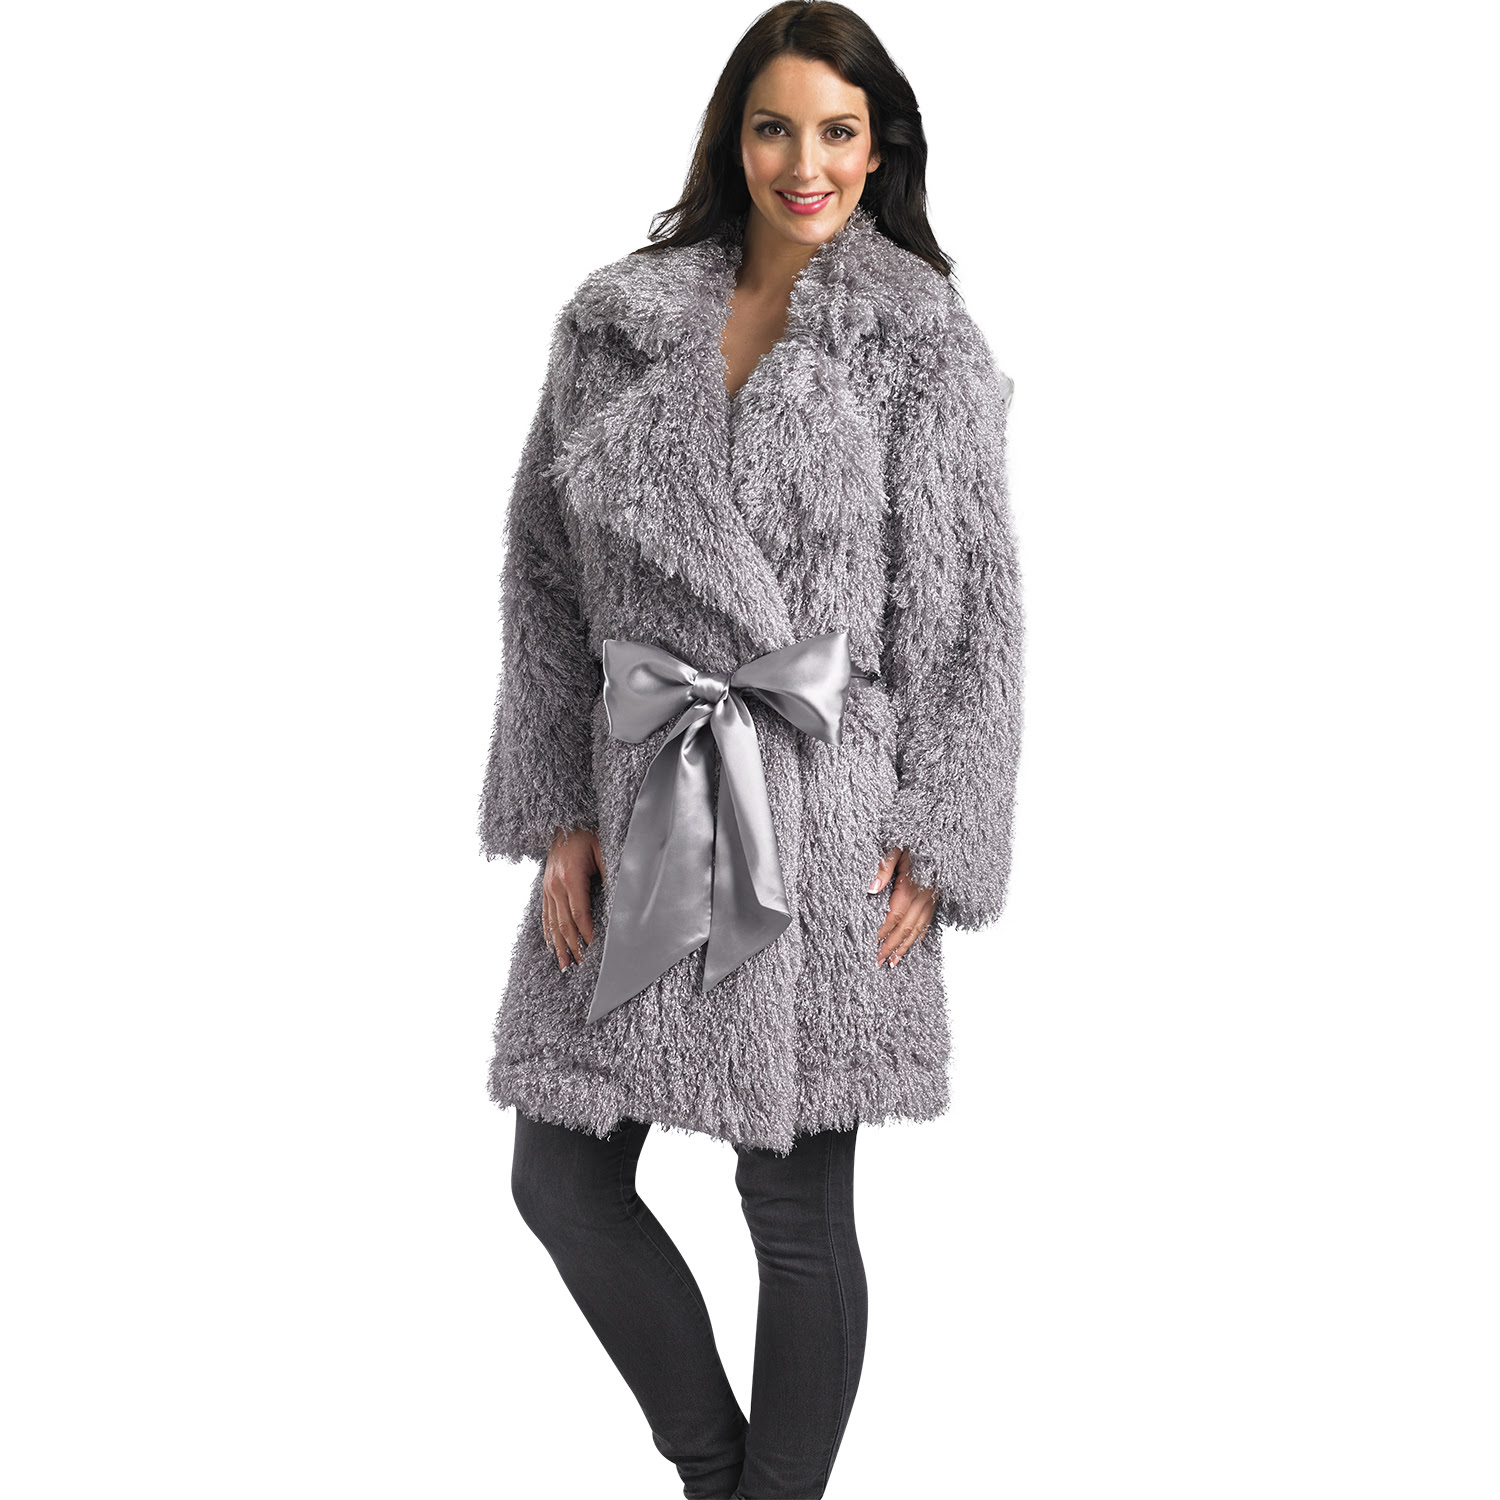 Luxury Dressing Gowns Womens - Home Decorating Ideas & Interior Design